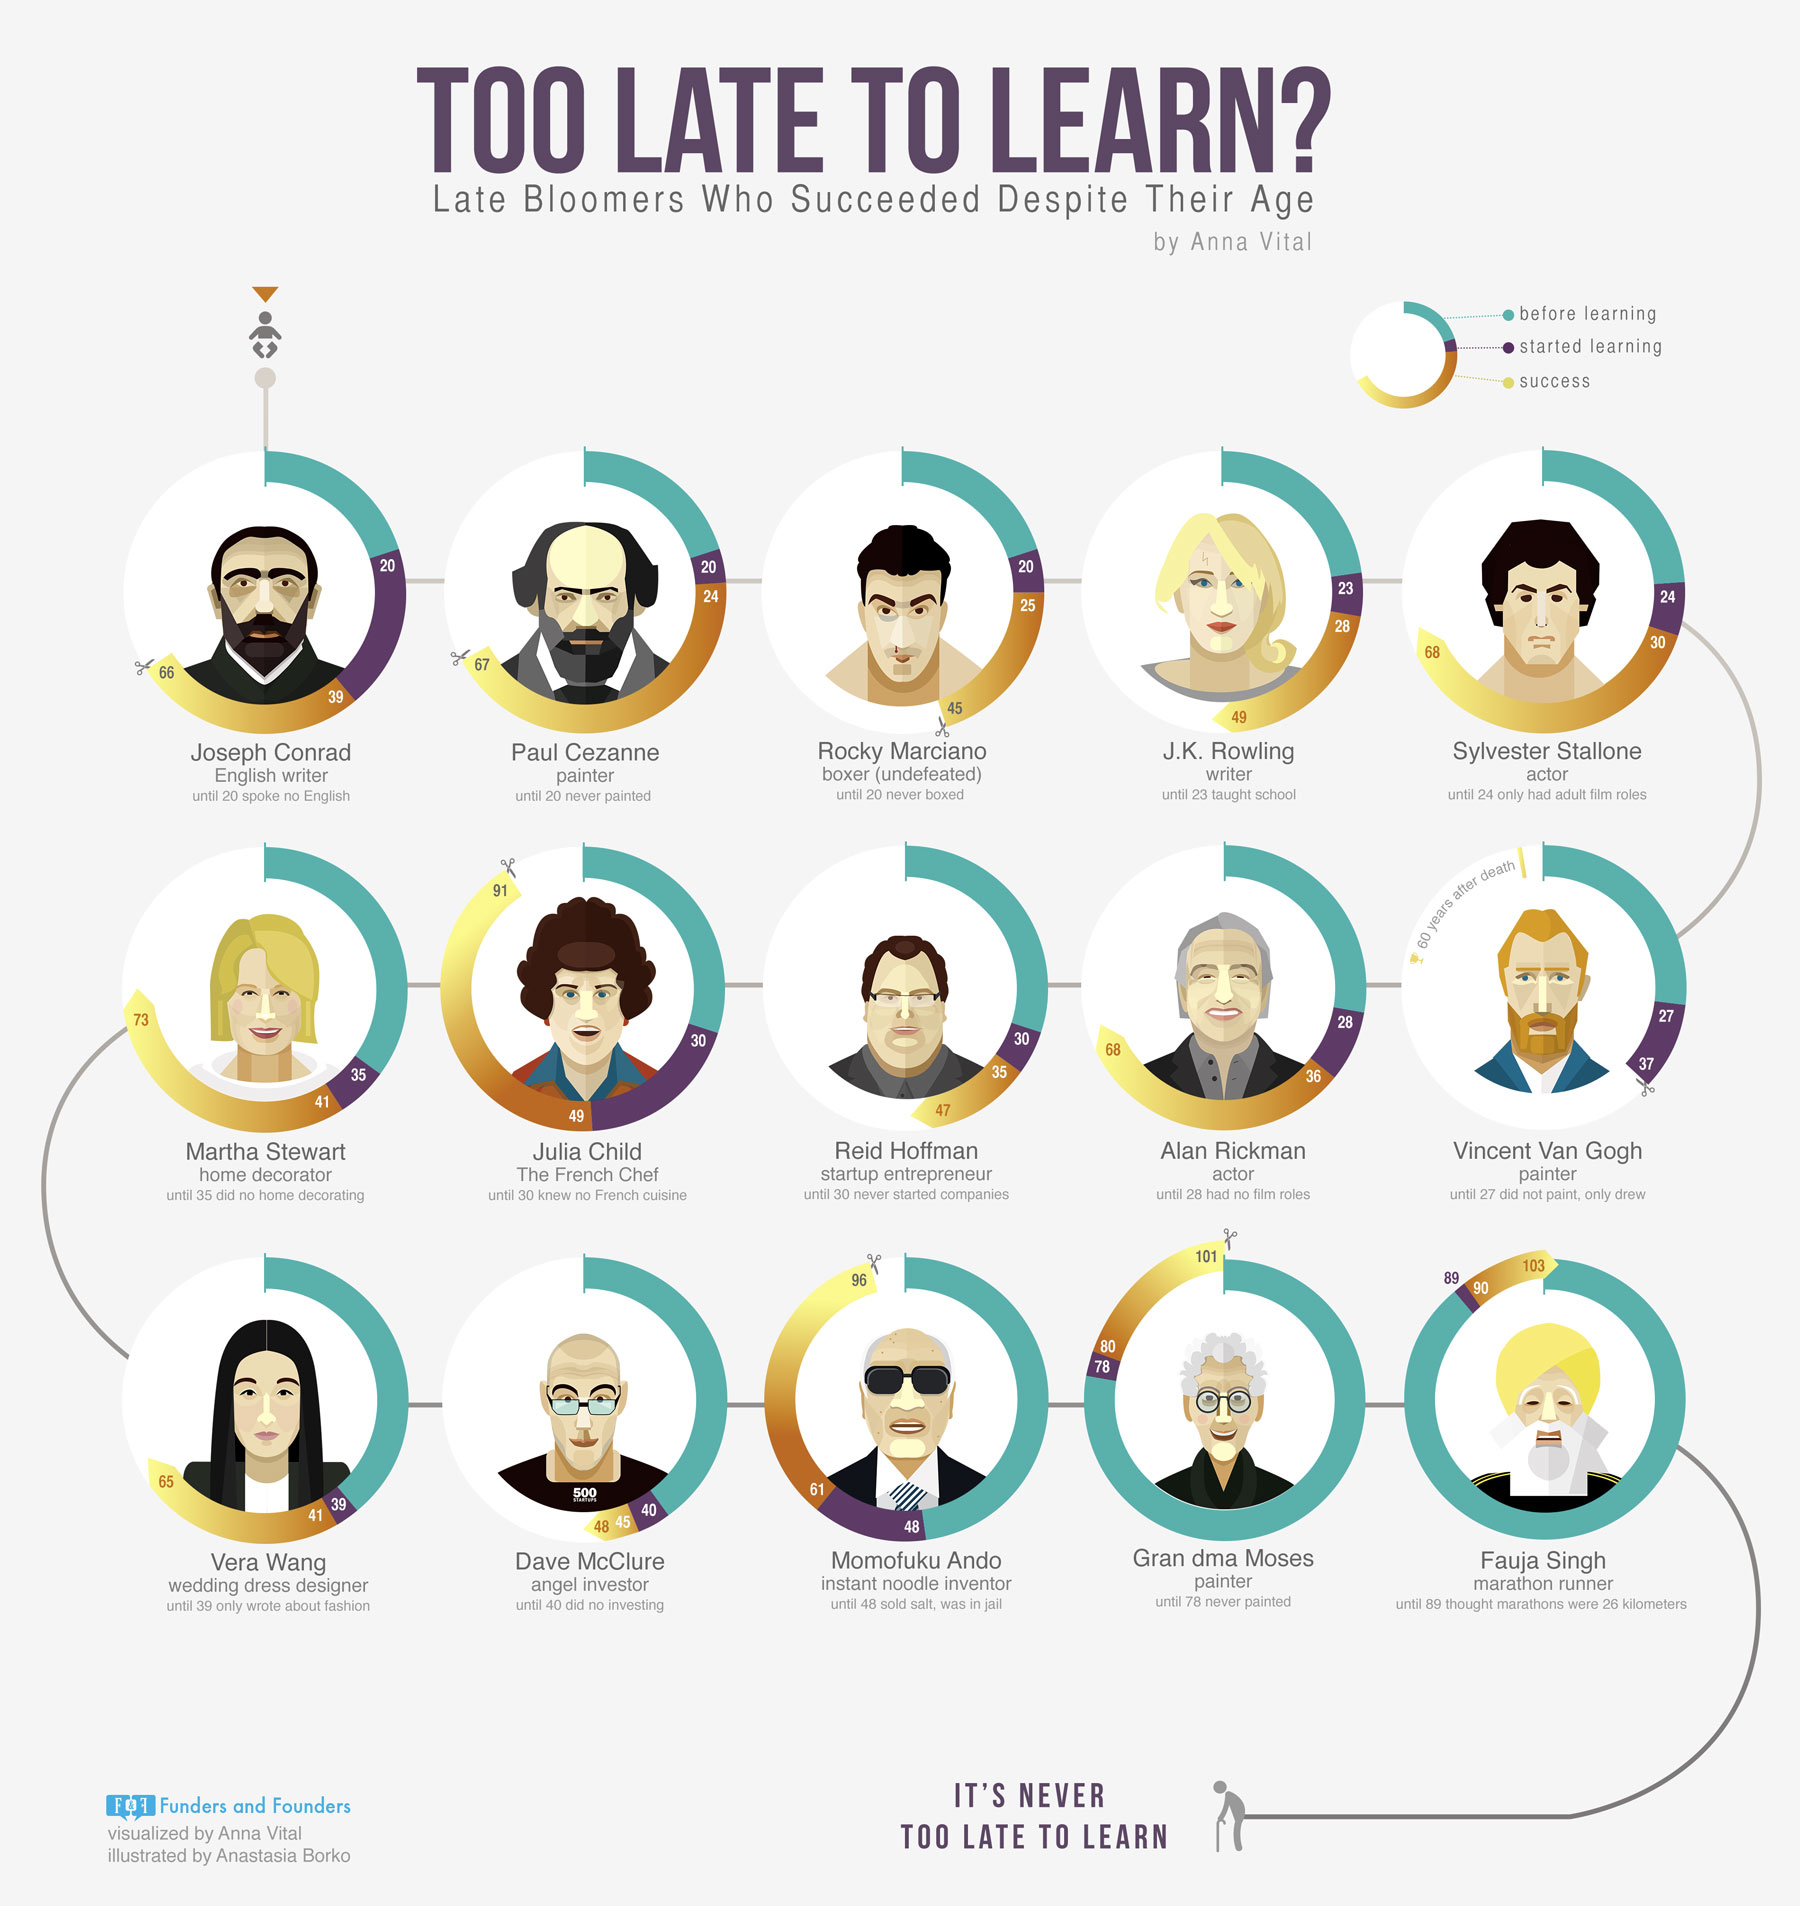 Too Late Too Learn - Late Bloomers, Infograhic by Anna Vital